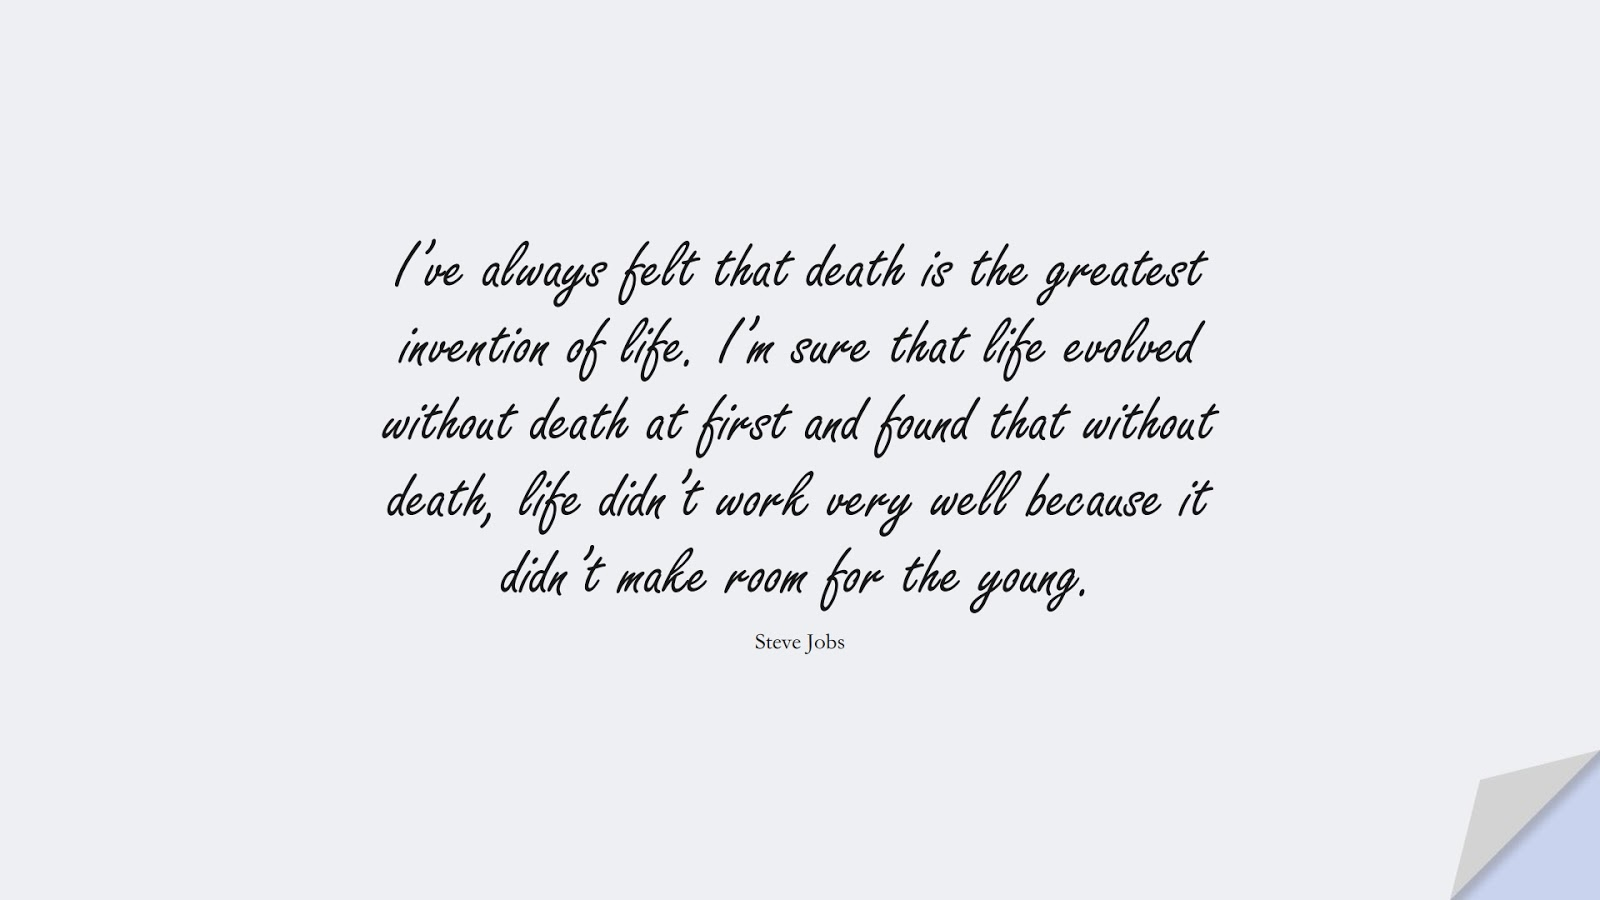 I've always felt that death is the greatest invention of life. I'm sure that life evolved without death at first and found that without death, life didn't work very well because it didn't make room for the young. (Steve Jobs);  #SteveJobsQuotes